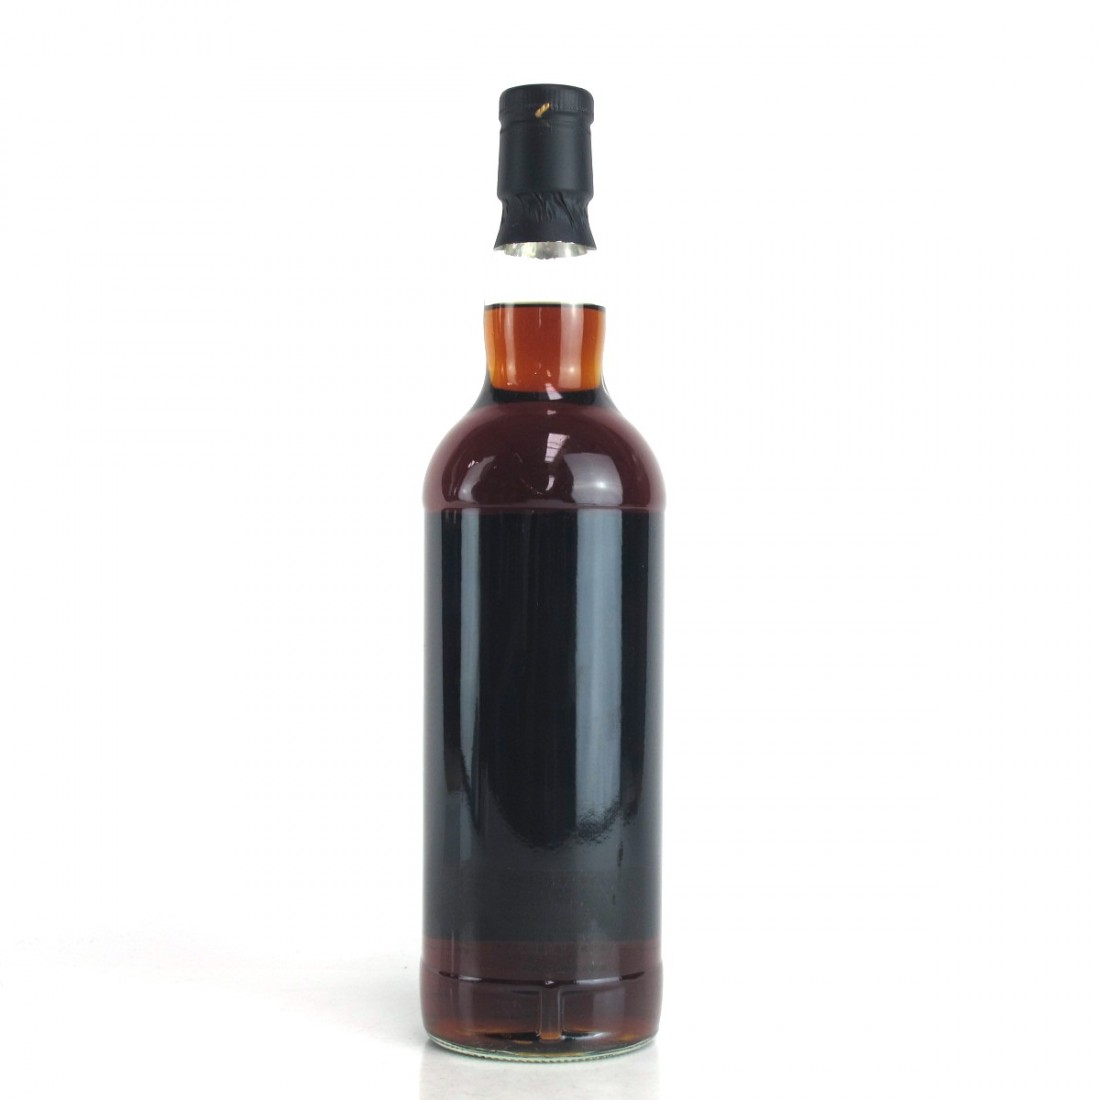 Glenrothes 1997 Whisky Find / Tiger's Choice